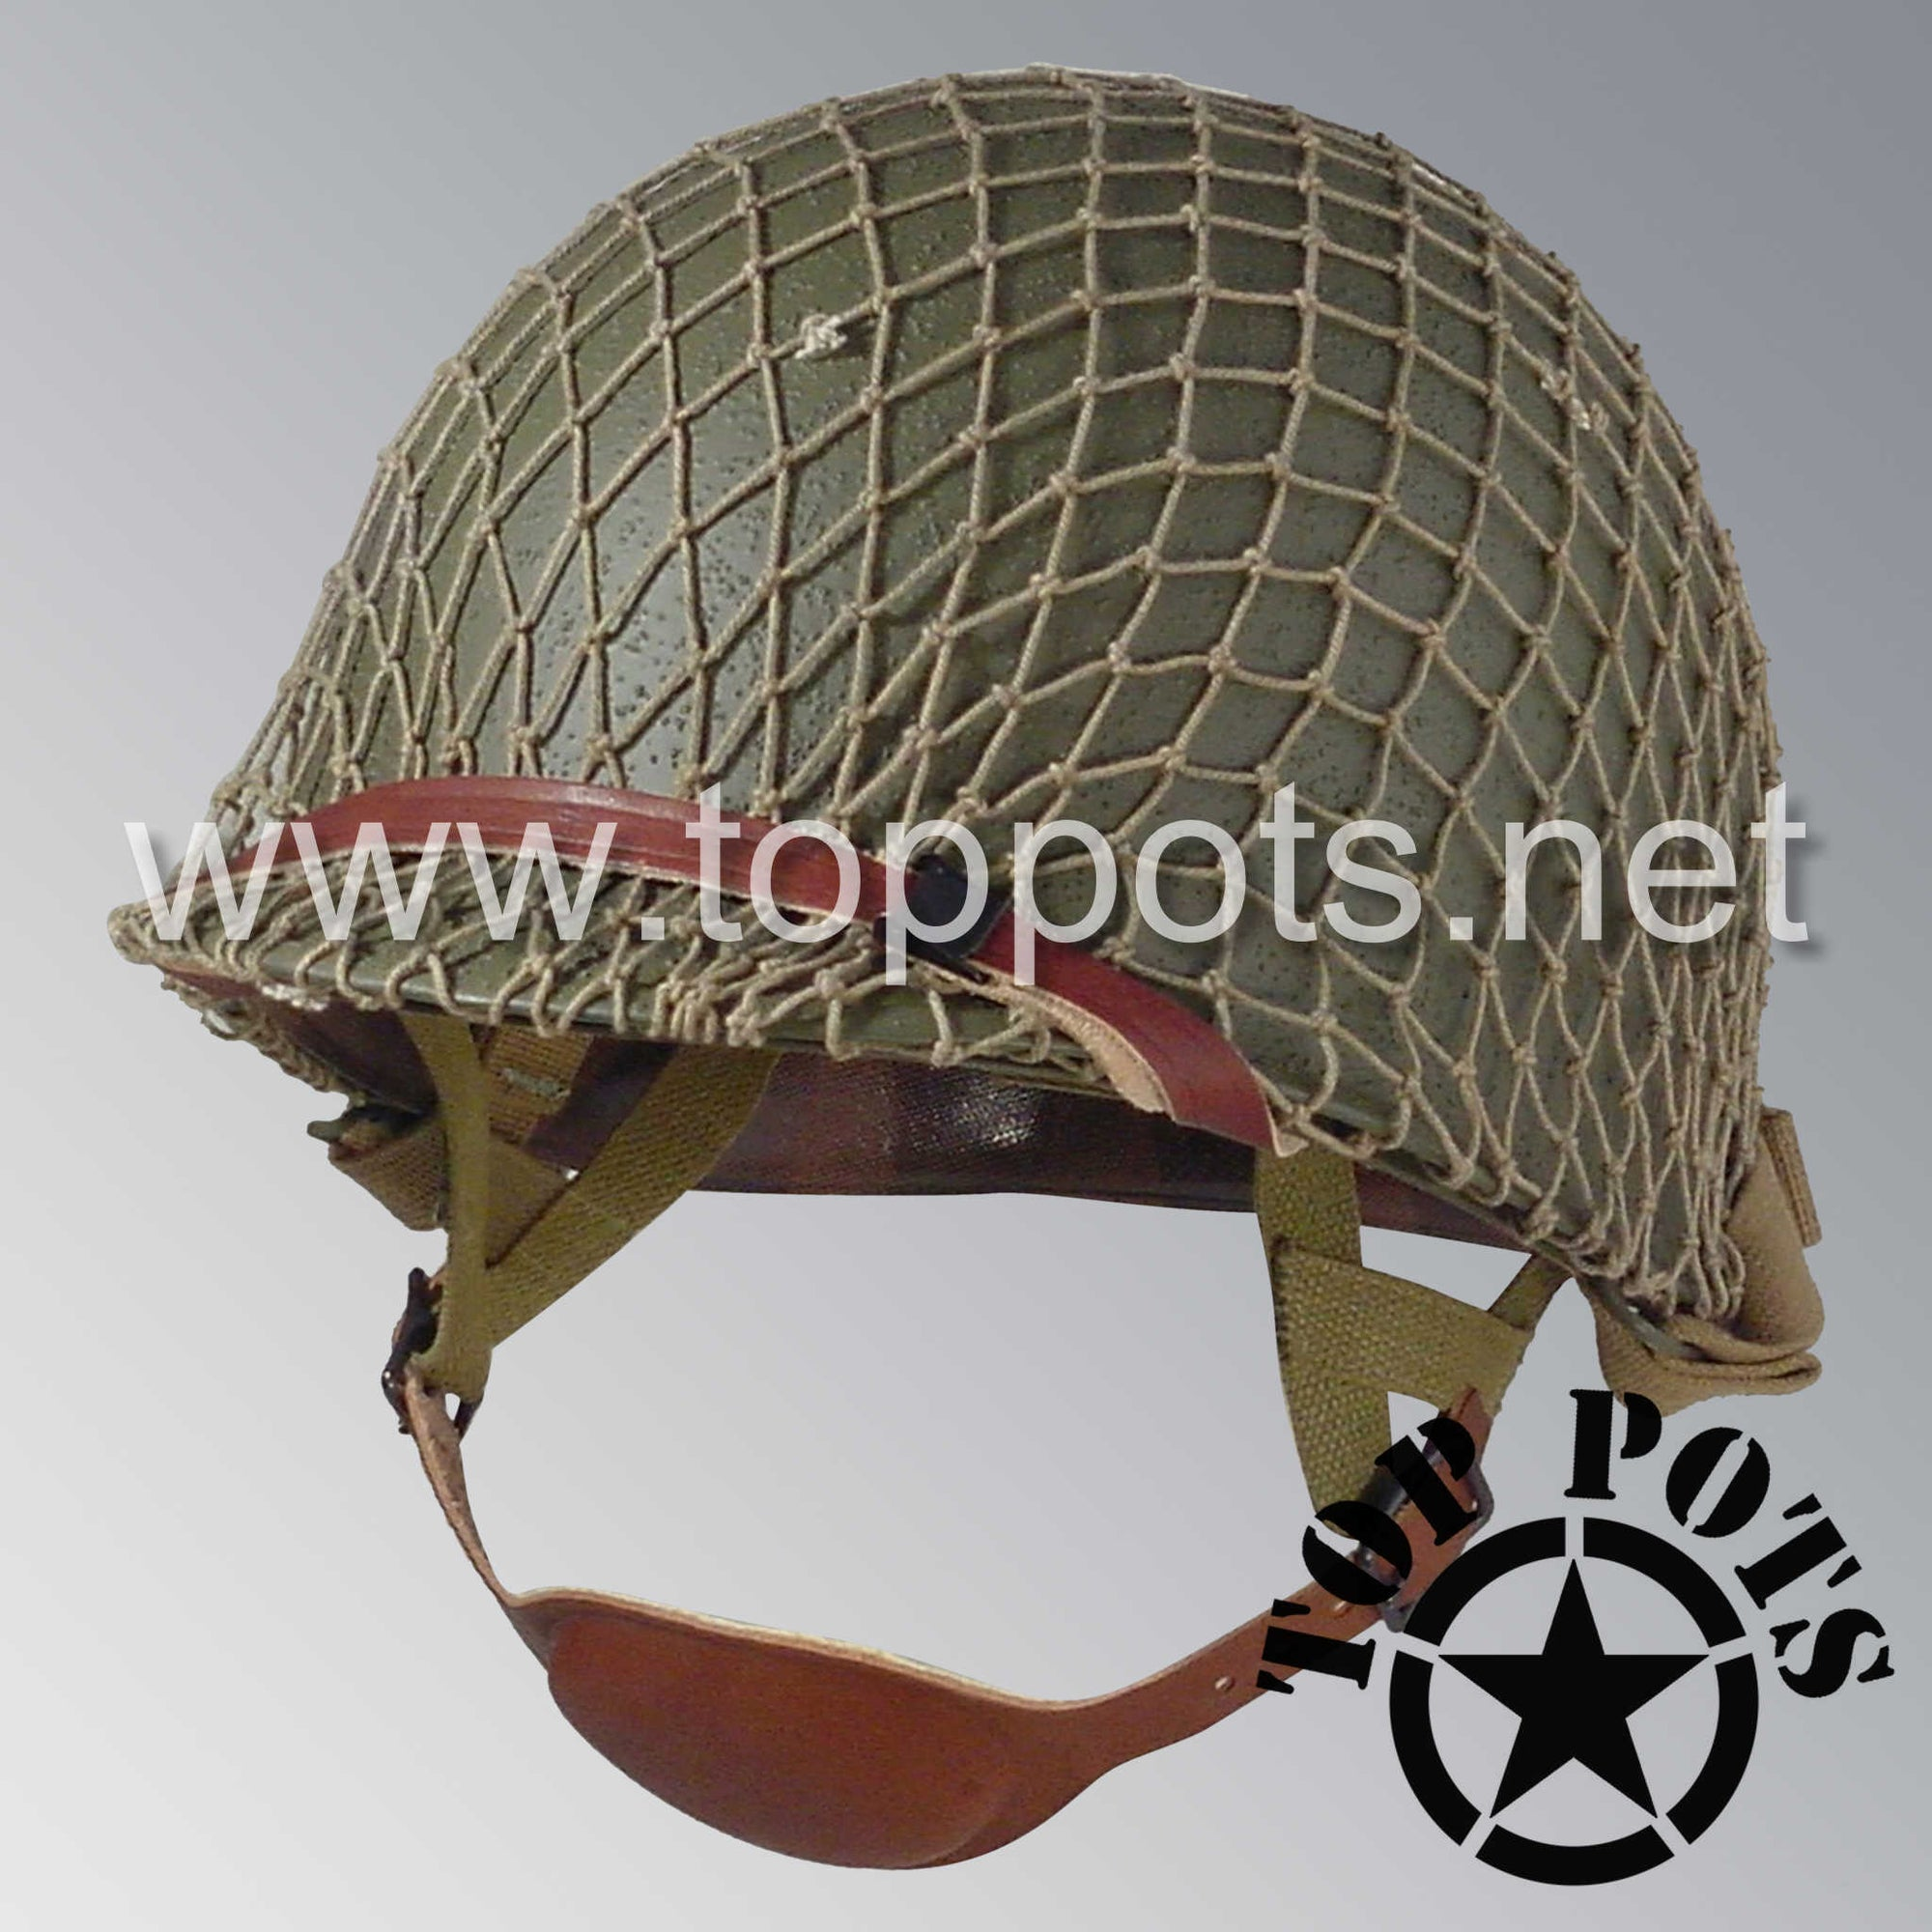 Image 1 of WWII US Army Restored Original M1C Paratrooper Airborne Helmet Swivel Bale Shell and Liner with Khaki Net